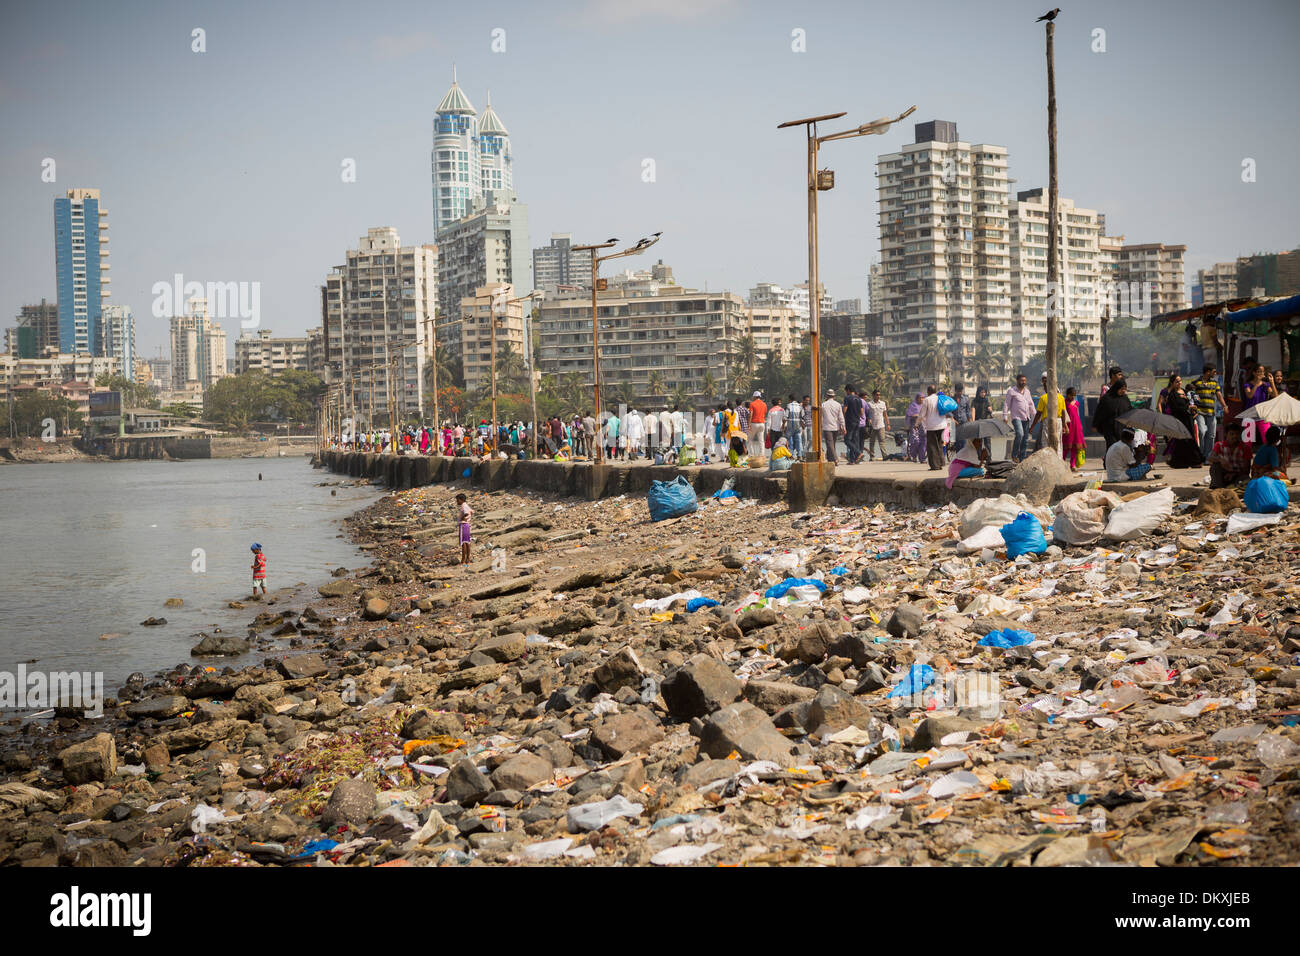 pollution in mumbai Air pollution is increasing these days due to burning of various substances, including wood, leaves, and even toxic substances like used rubber tyres and plastic.